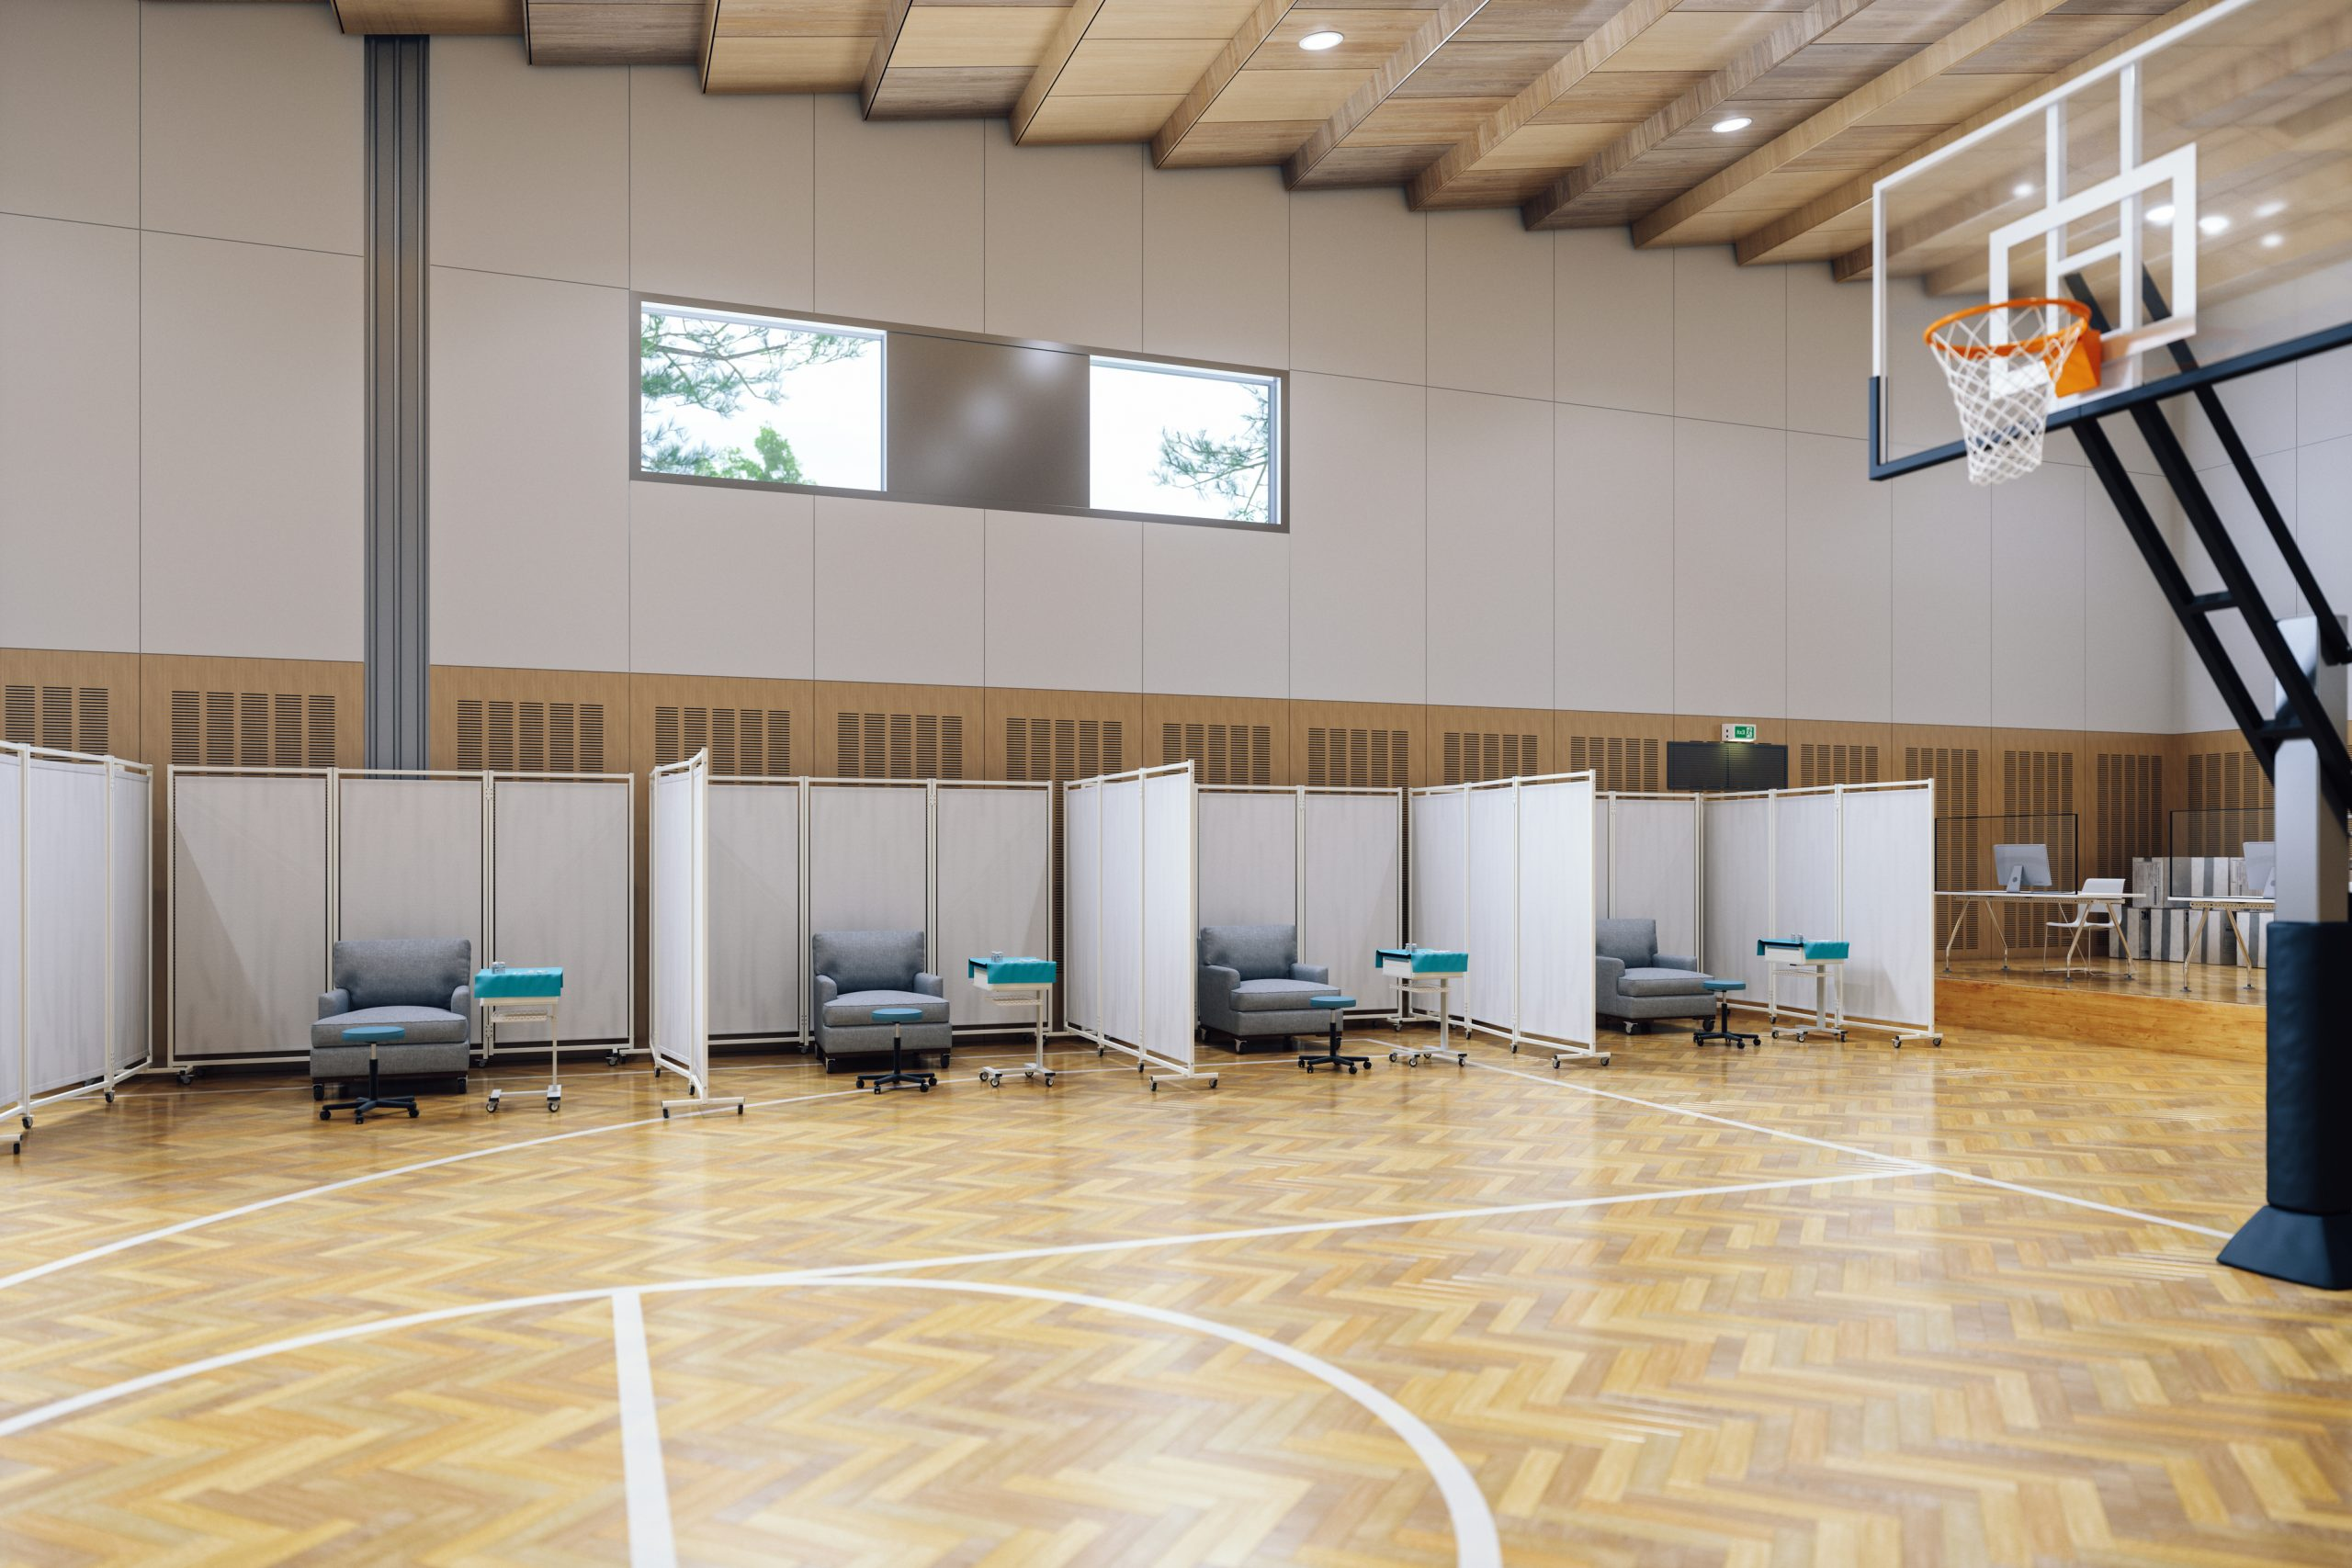 Basketball court transformed into a mass vaccination centre.